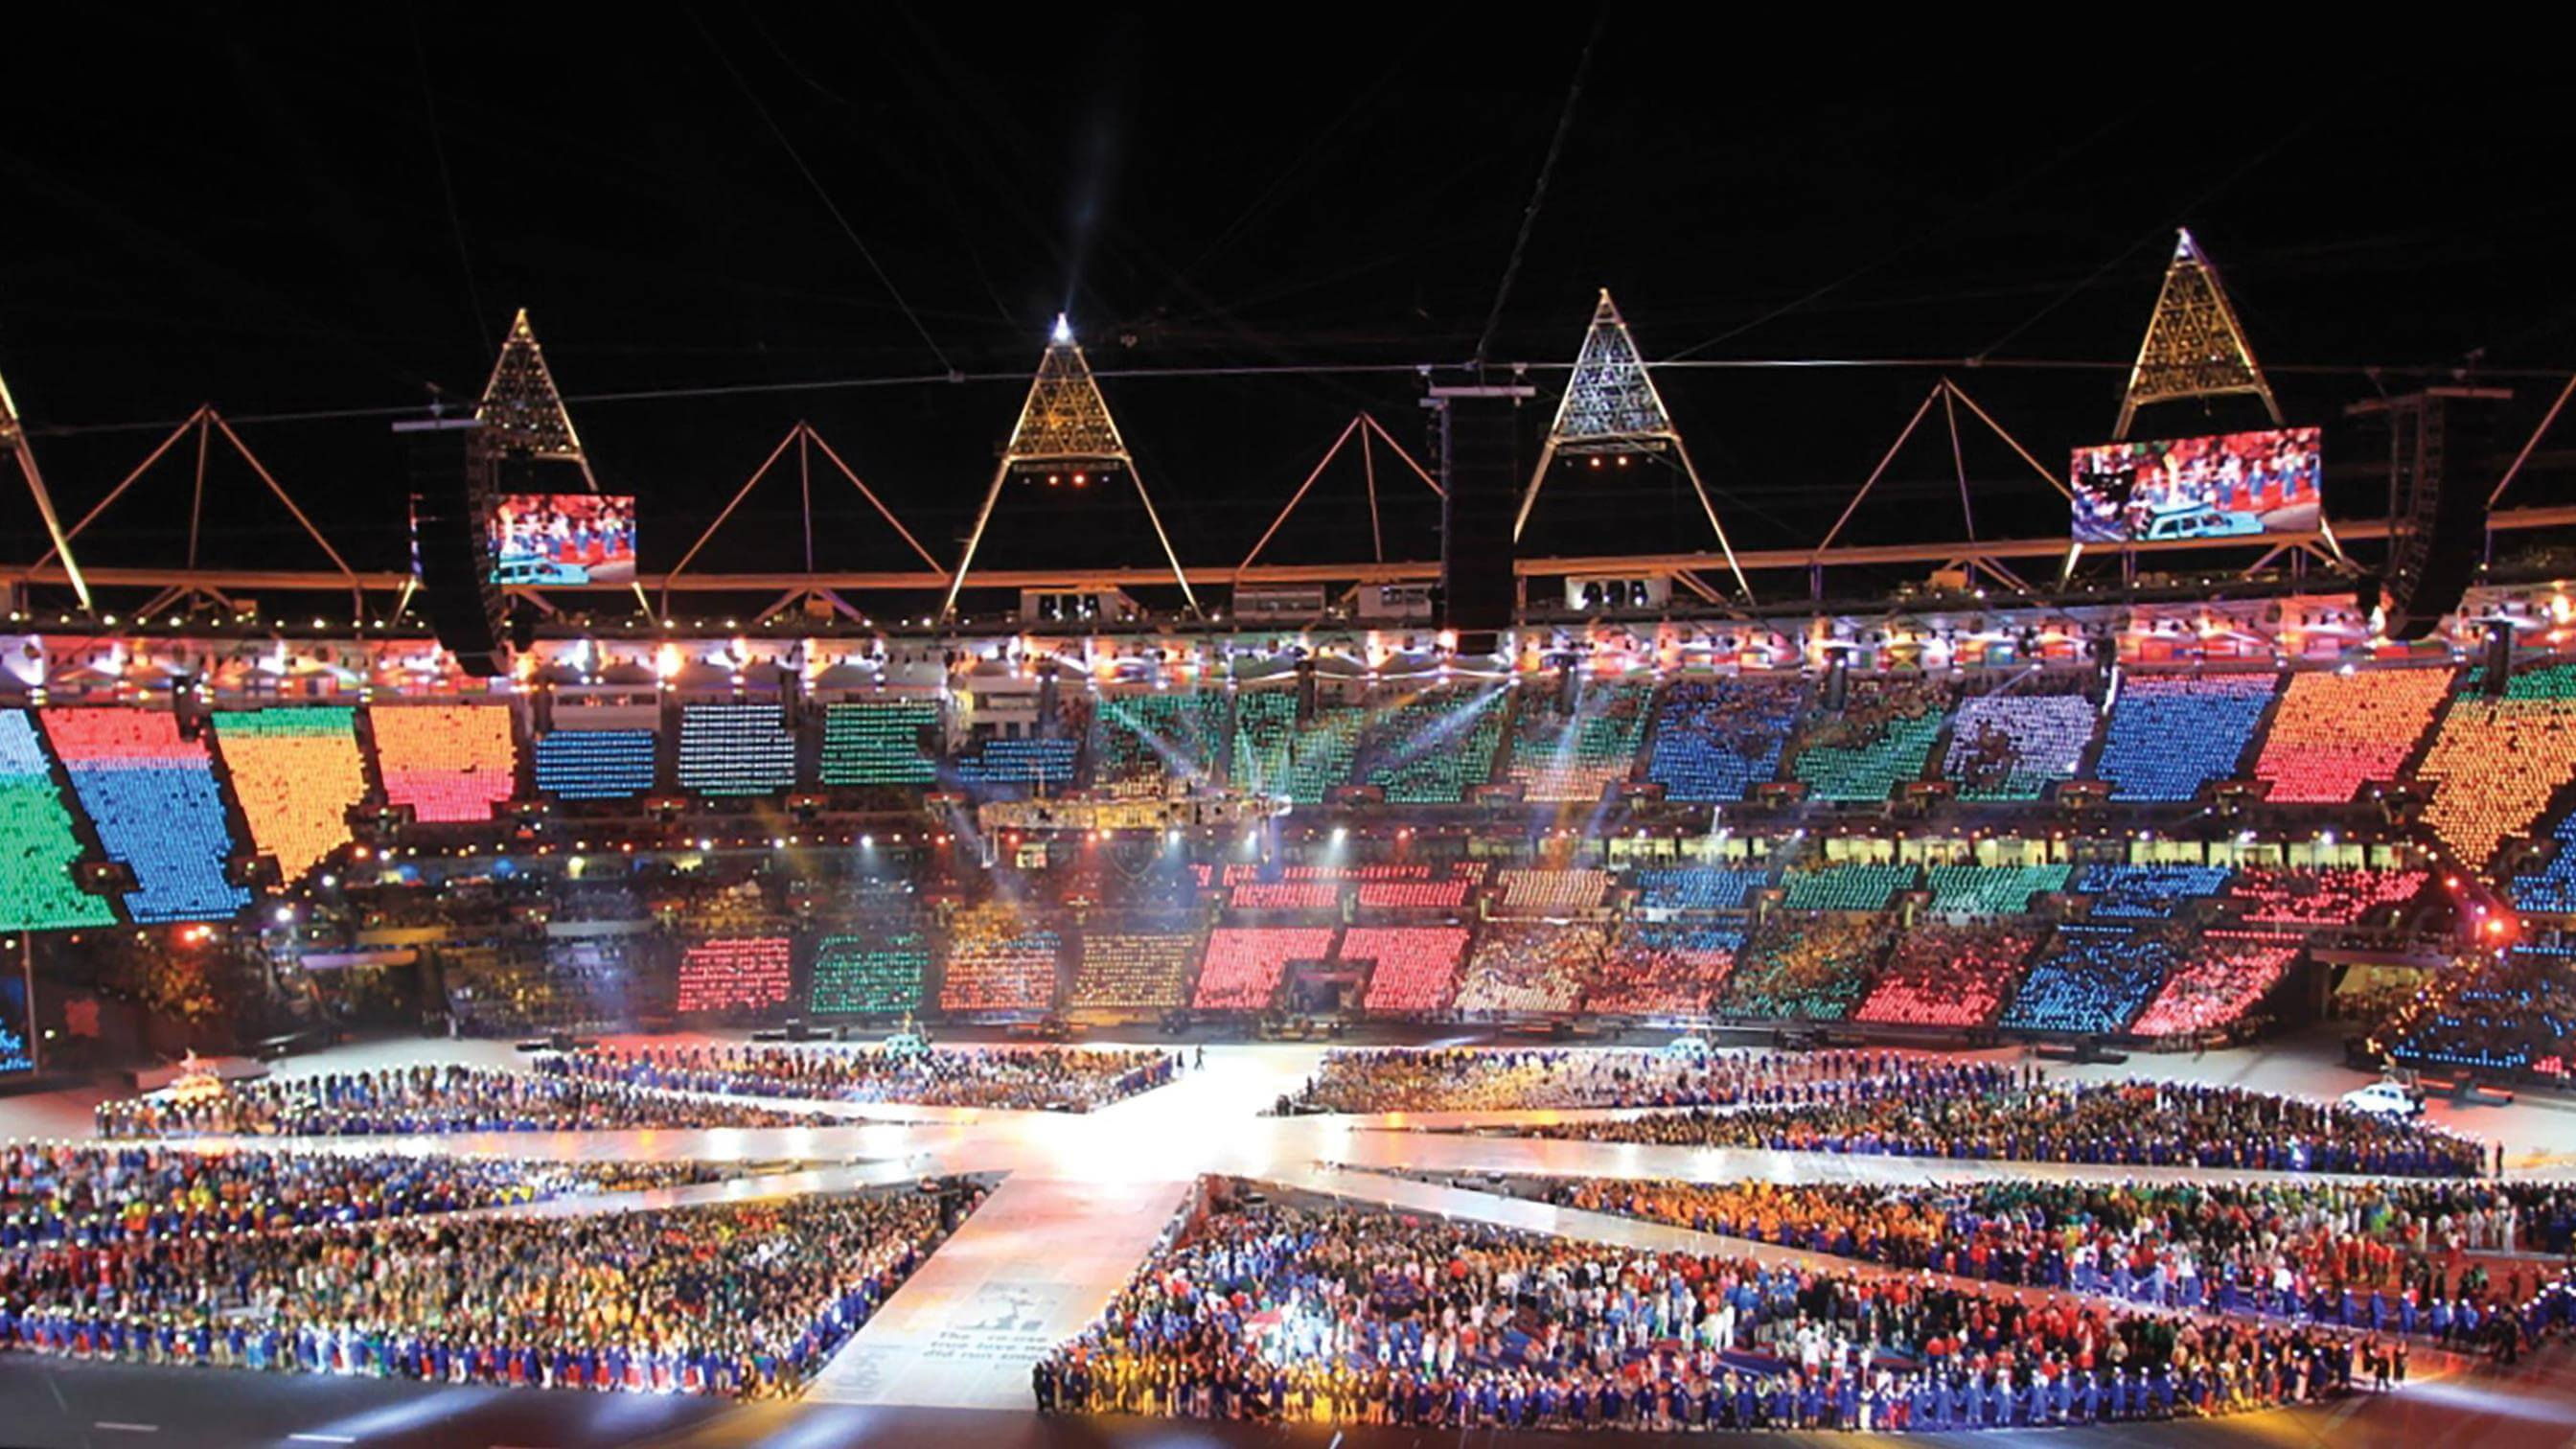 London Olympics ceremony in stadium